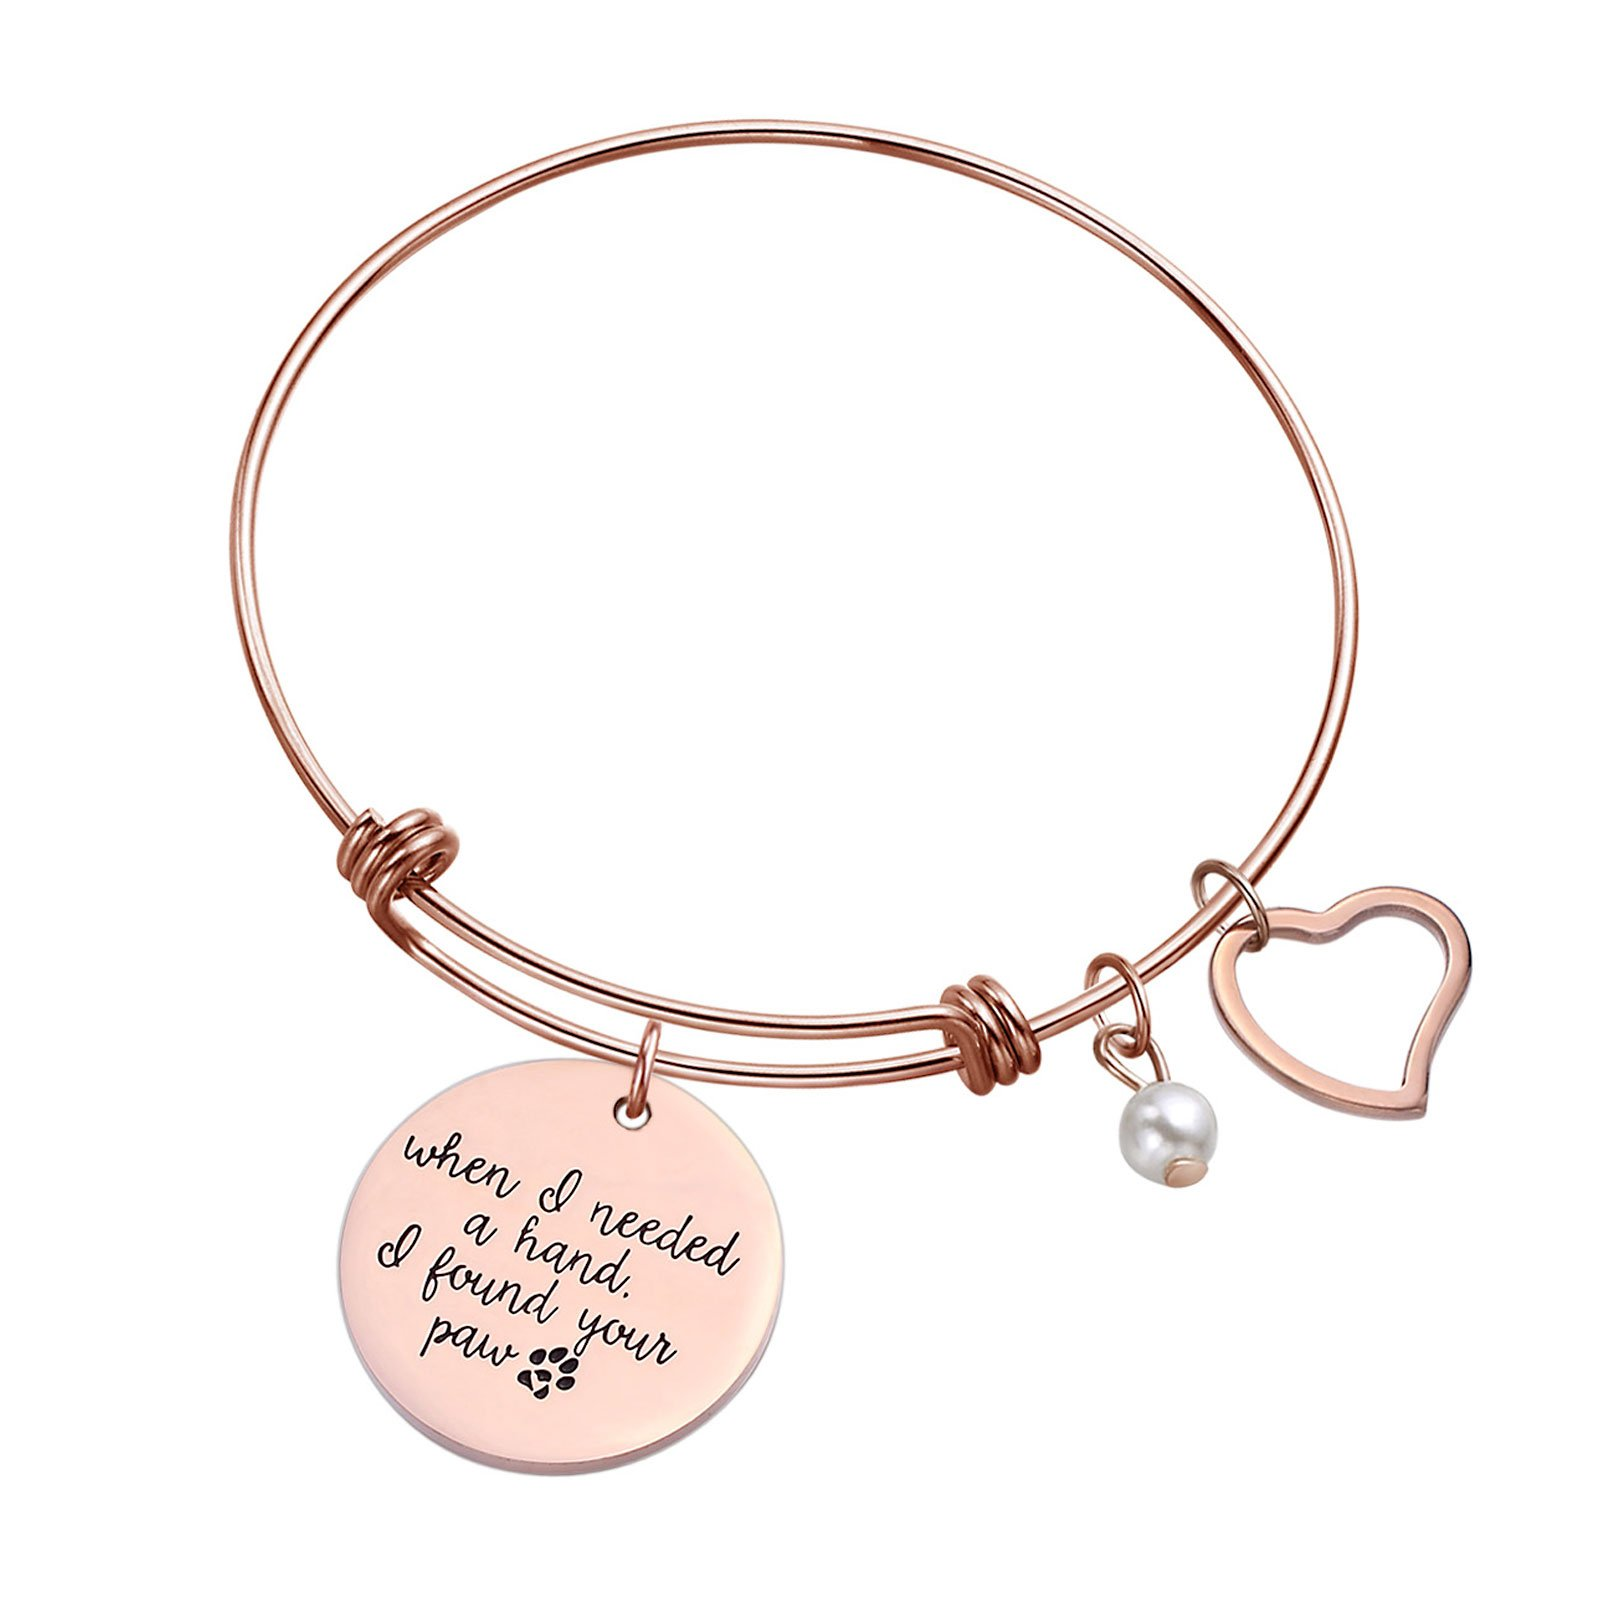 Sunflower Jewellery Charm Bracelet Adjustable Bangle Gift For Women Girl Sister Mother Friends (Rose Gold When I Needed A Hand I Found Your Paw)